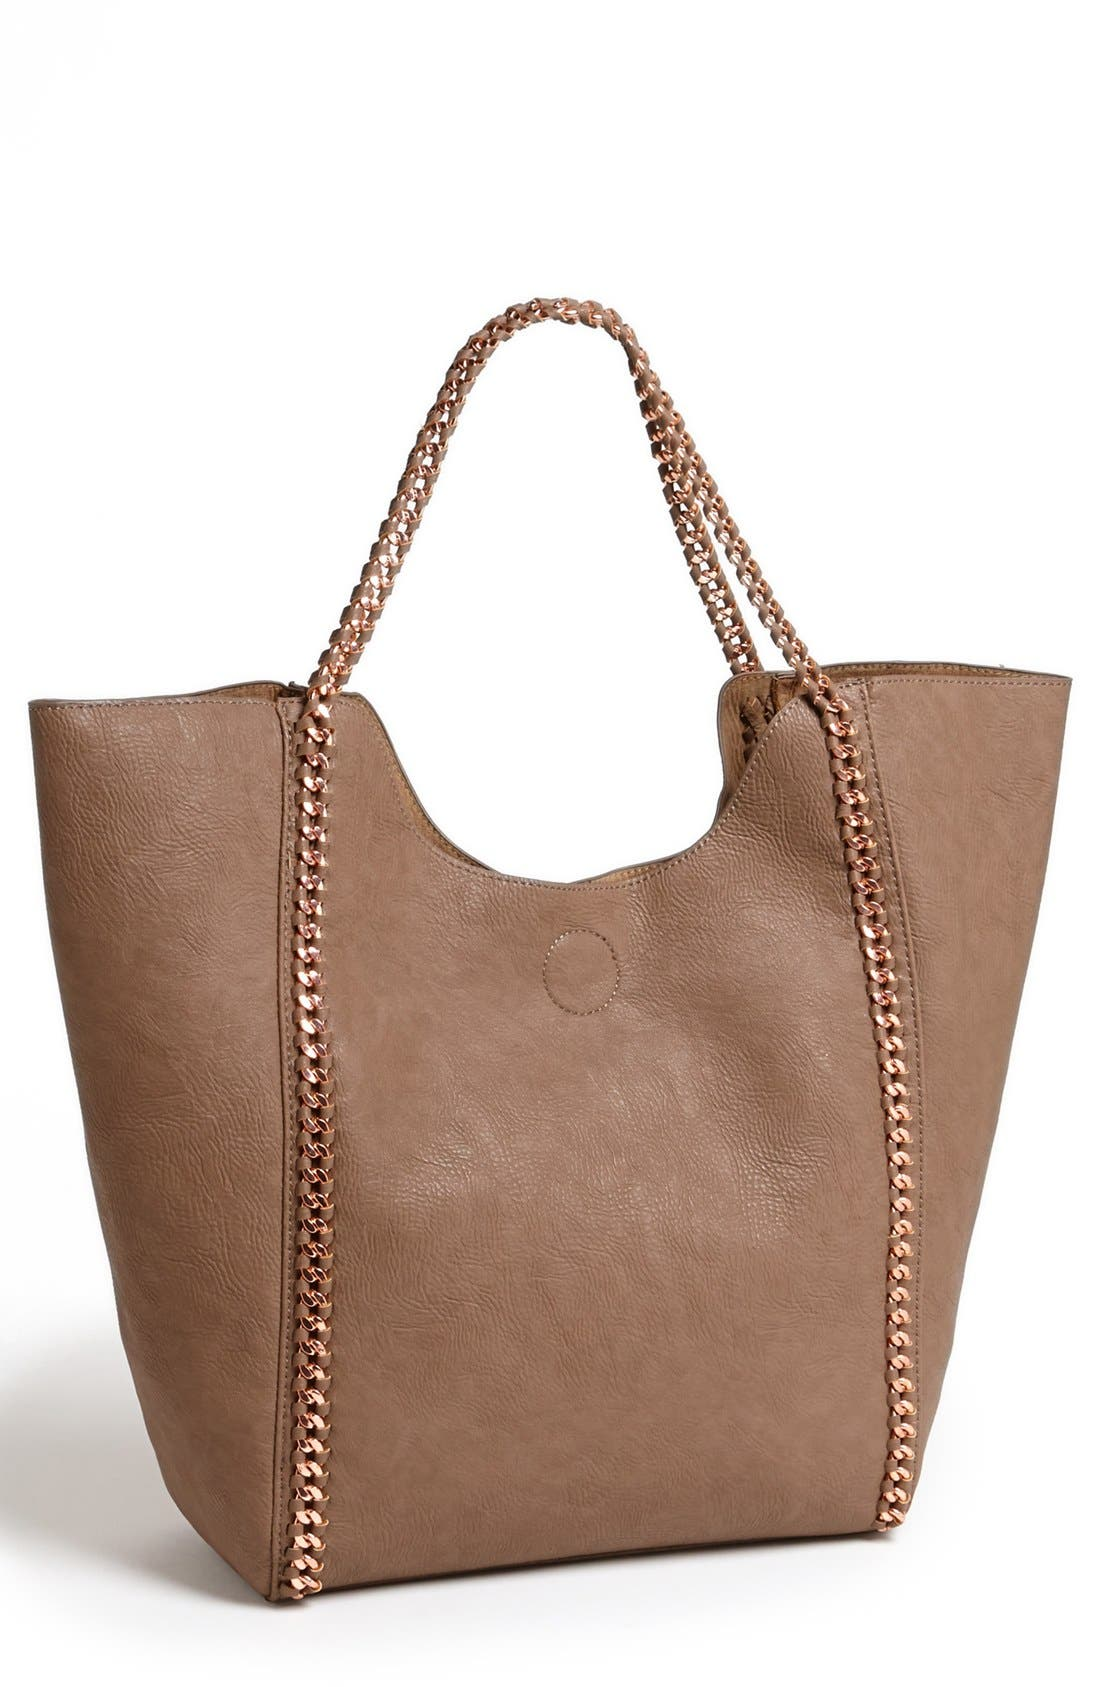 Alternate Image 1 Selected - Street Level Faux Leather Tote